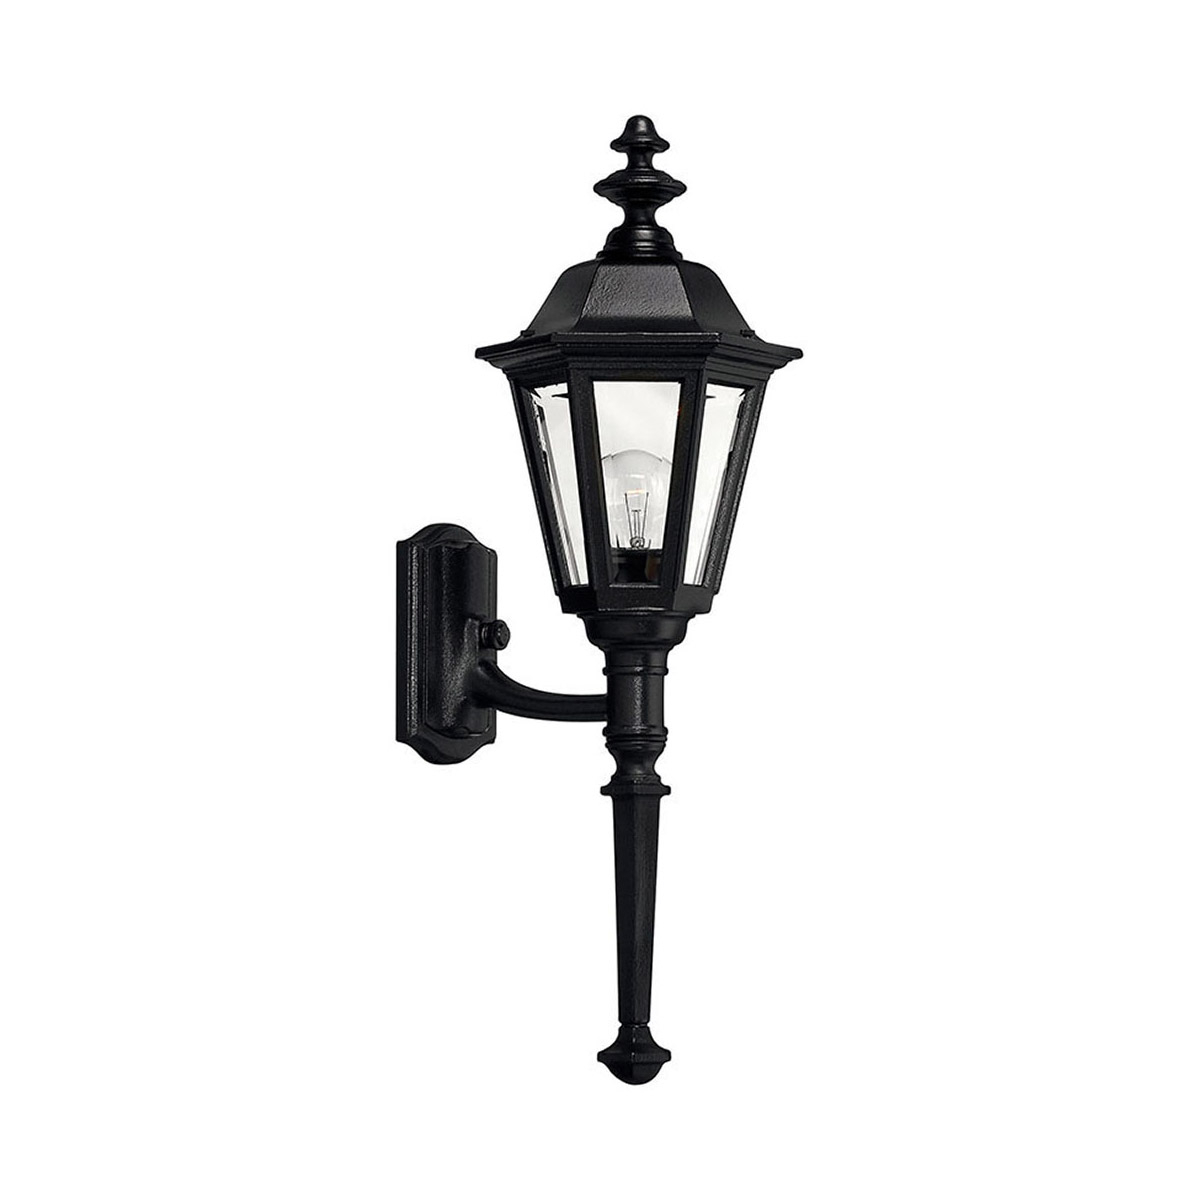 Hinkley Lighting 1410bk Manor House Outdoor Wall Light For Most Current Esquina Powder Coated Black Outdoor Wall Lanterns (View 1 of 20)